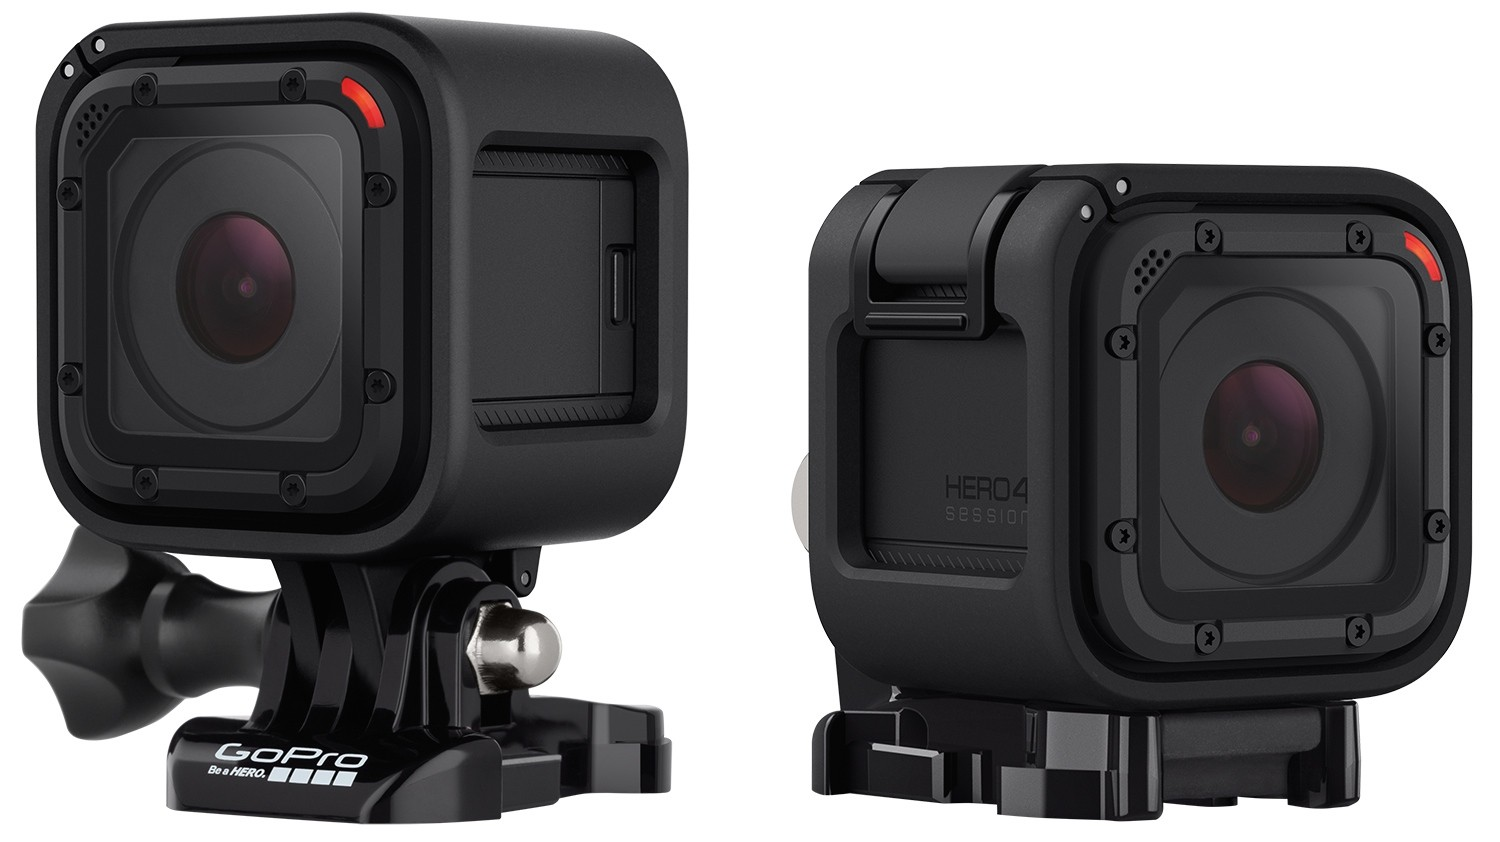 The new GoPro HERO4 Session